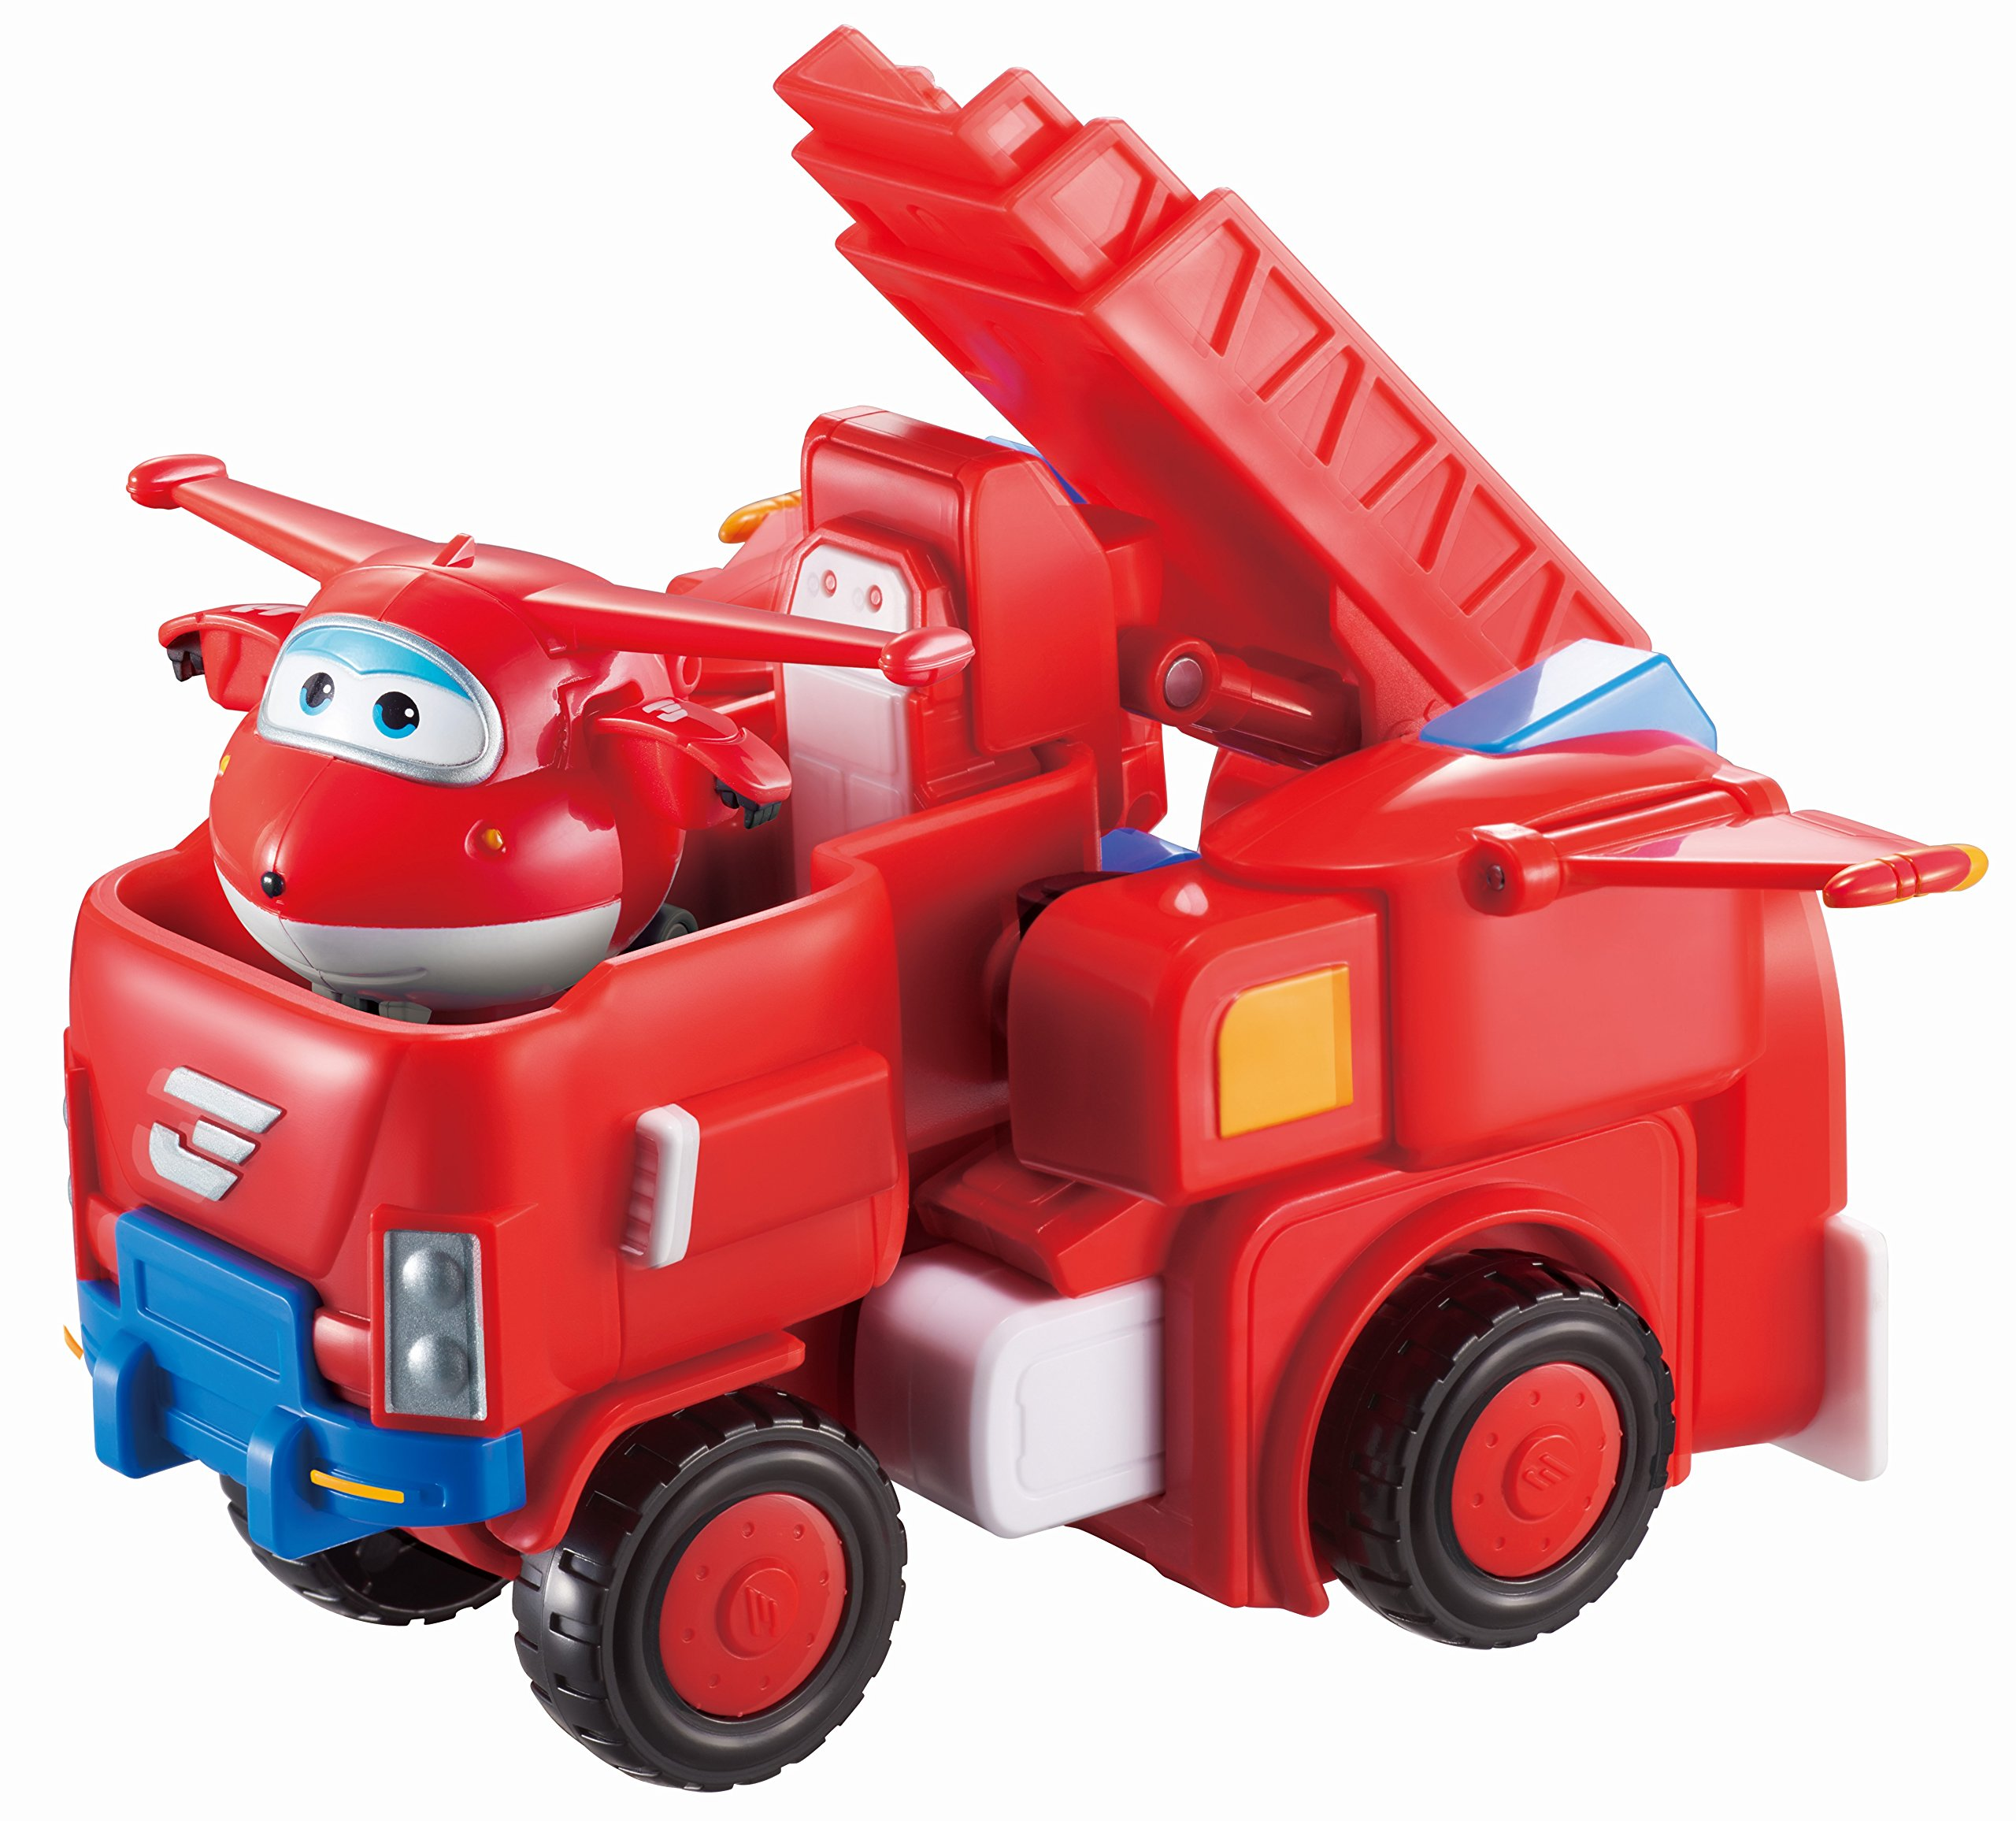 Super Wings - Jett's Robo Rig, Transforming Toy Vehicle Set, Includes Transform-A-Bot Jett Figure, 2'' Scale by Super Wings -